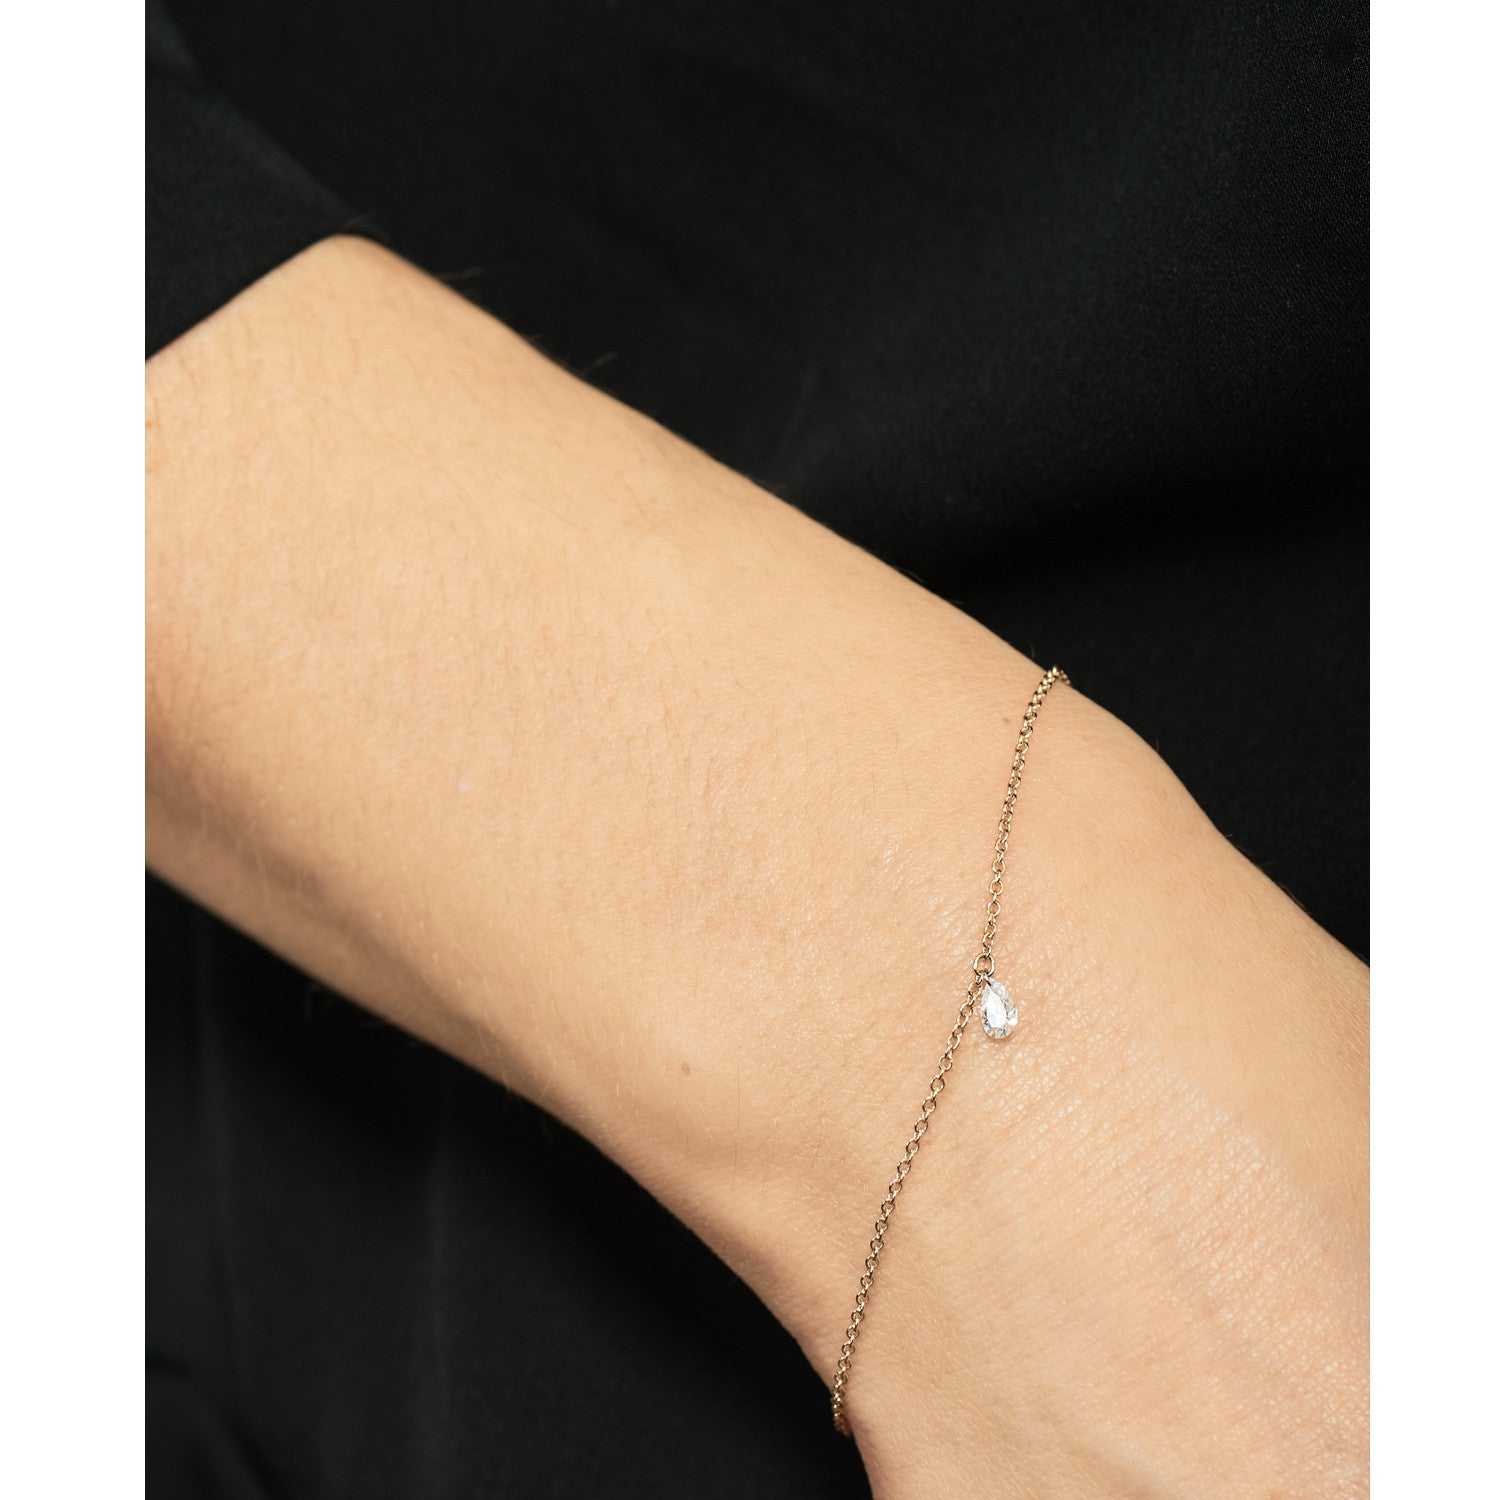 Selin Kent 14K Ersa Bracelet with Pear White Diamond - On Model